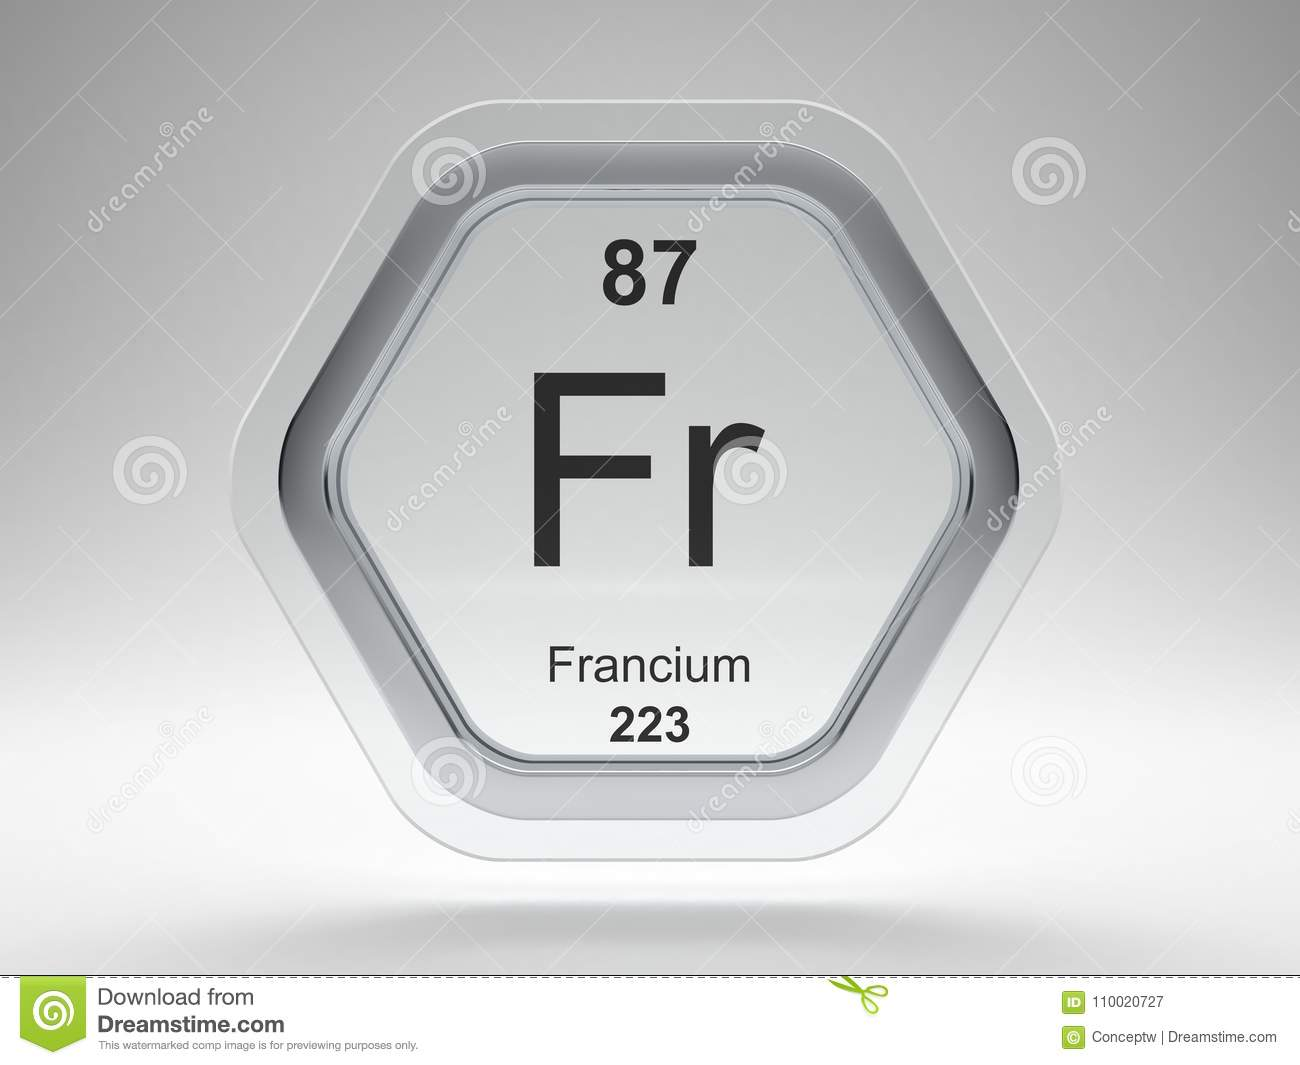 Francium Symbol Hexagon Frame Stock Illustration Illustration Of